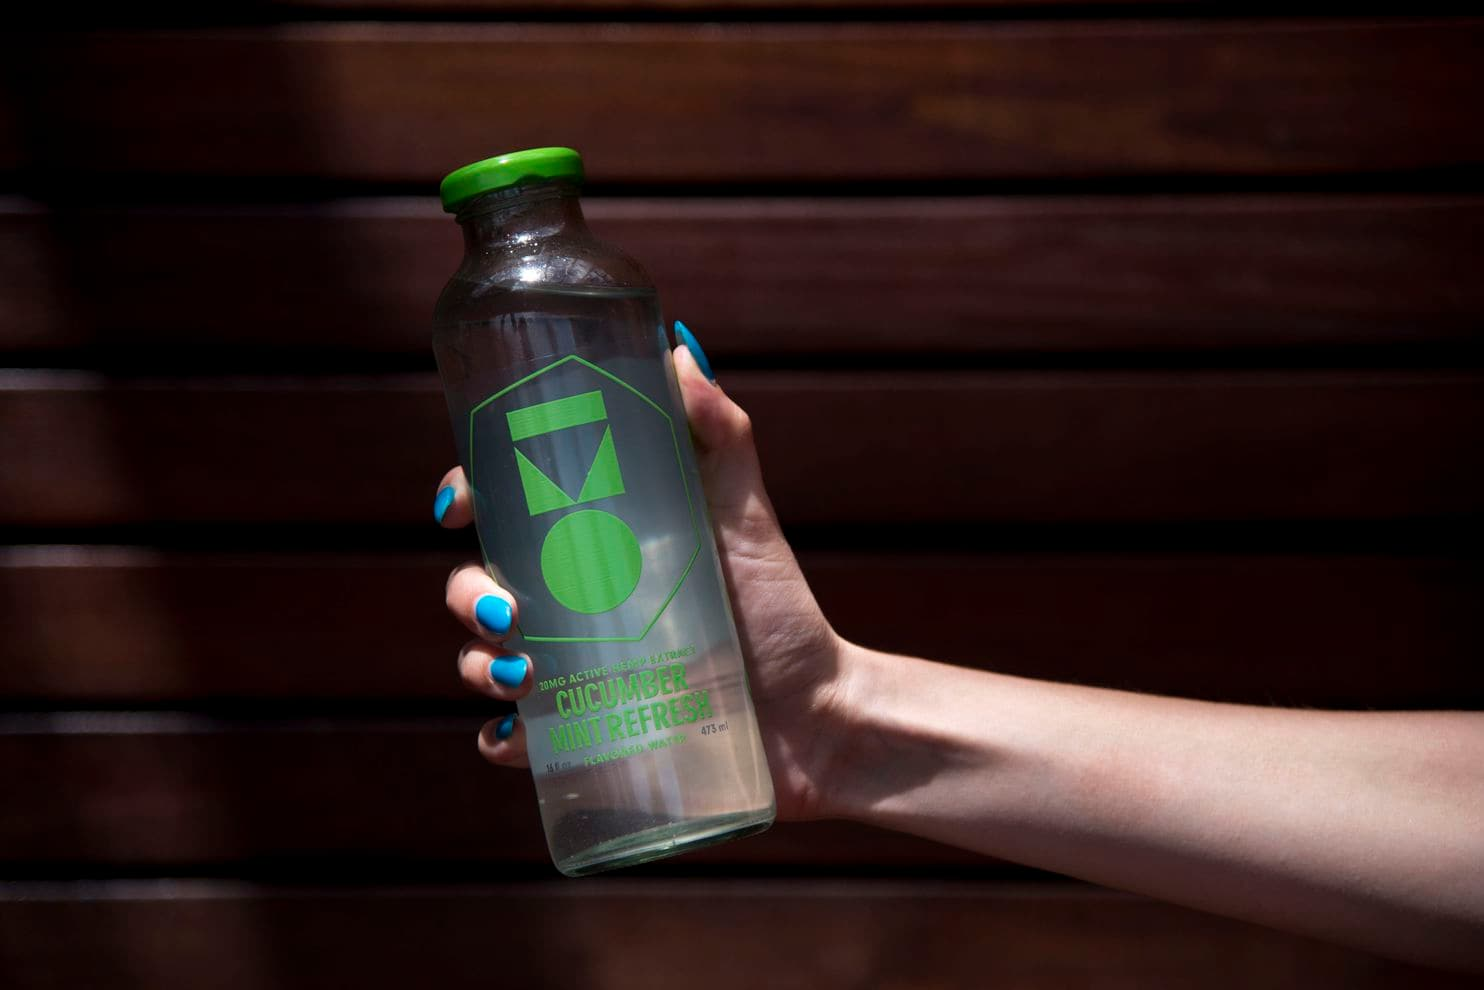 A CBD-infused water, Oki water, is set to hit major grocery stores in Colorado and California next week. The company has produced 360,000 bottles so far. (Marlena Sloss/The Washington Post)